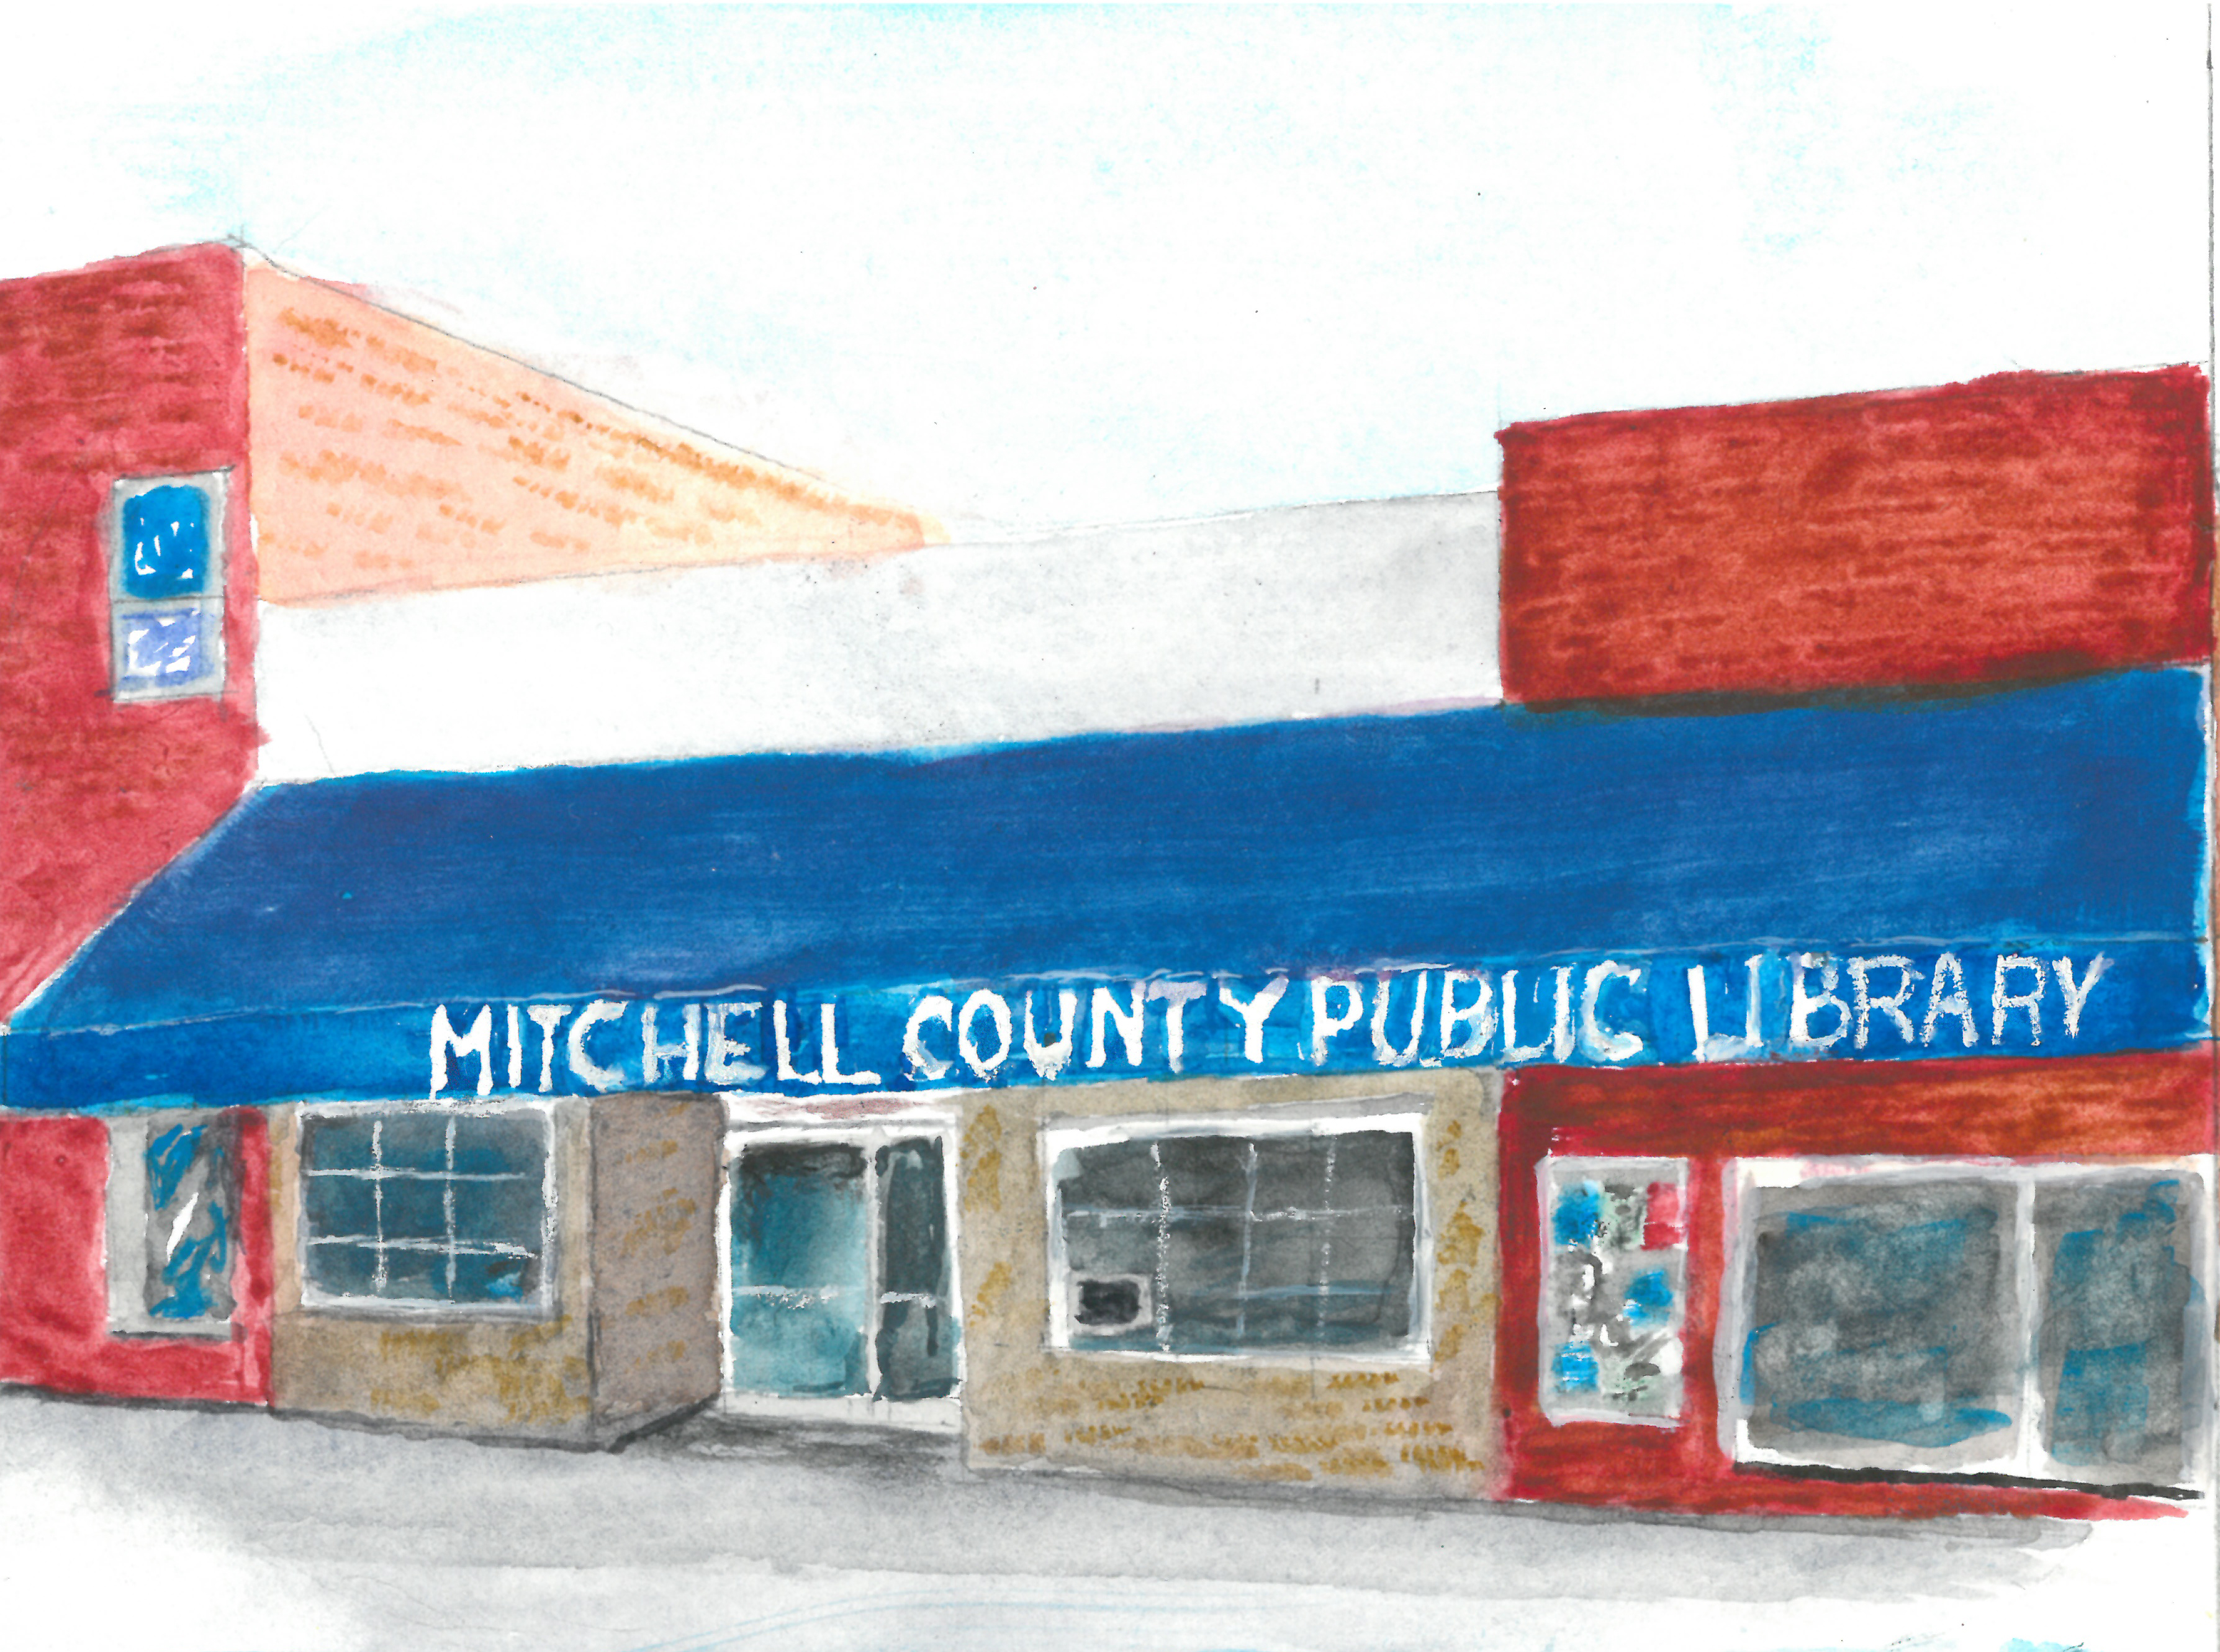 Got Wiggles Story Time @ Mitchell County Public Library